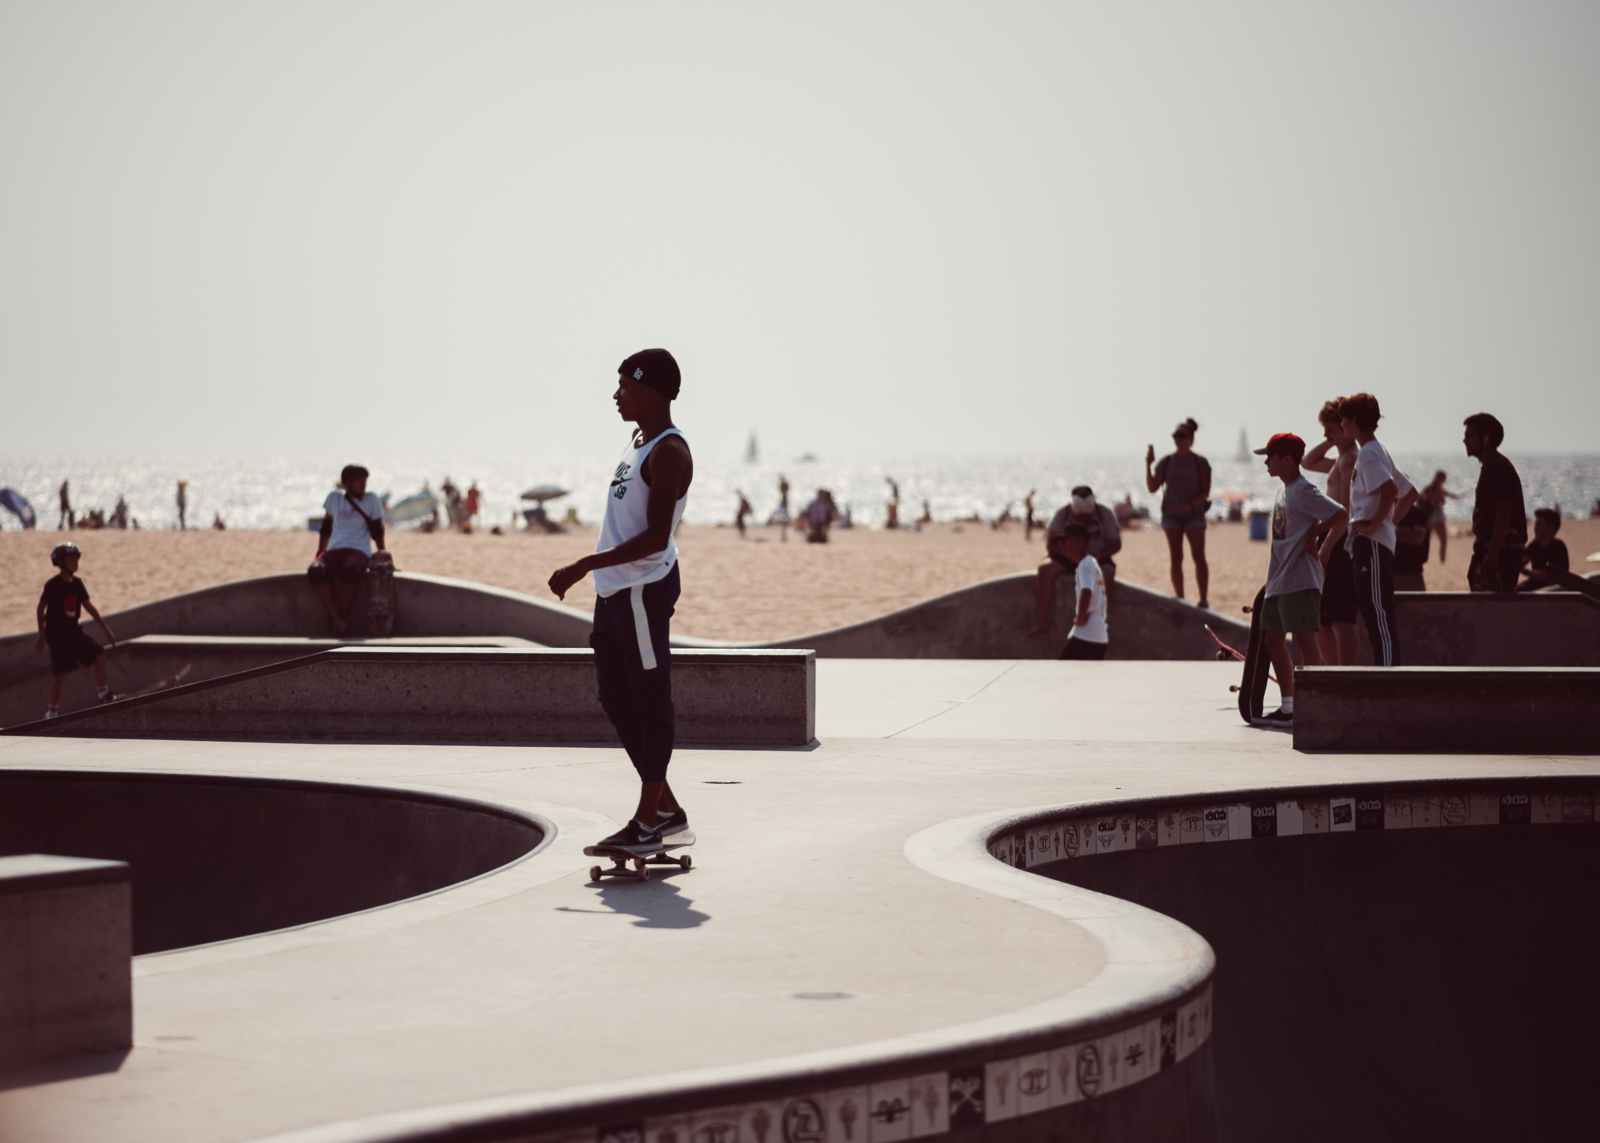 World famous skateboard park at Venice Beach, Ca